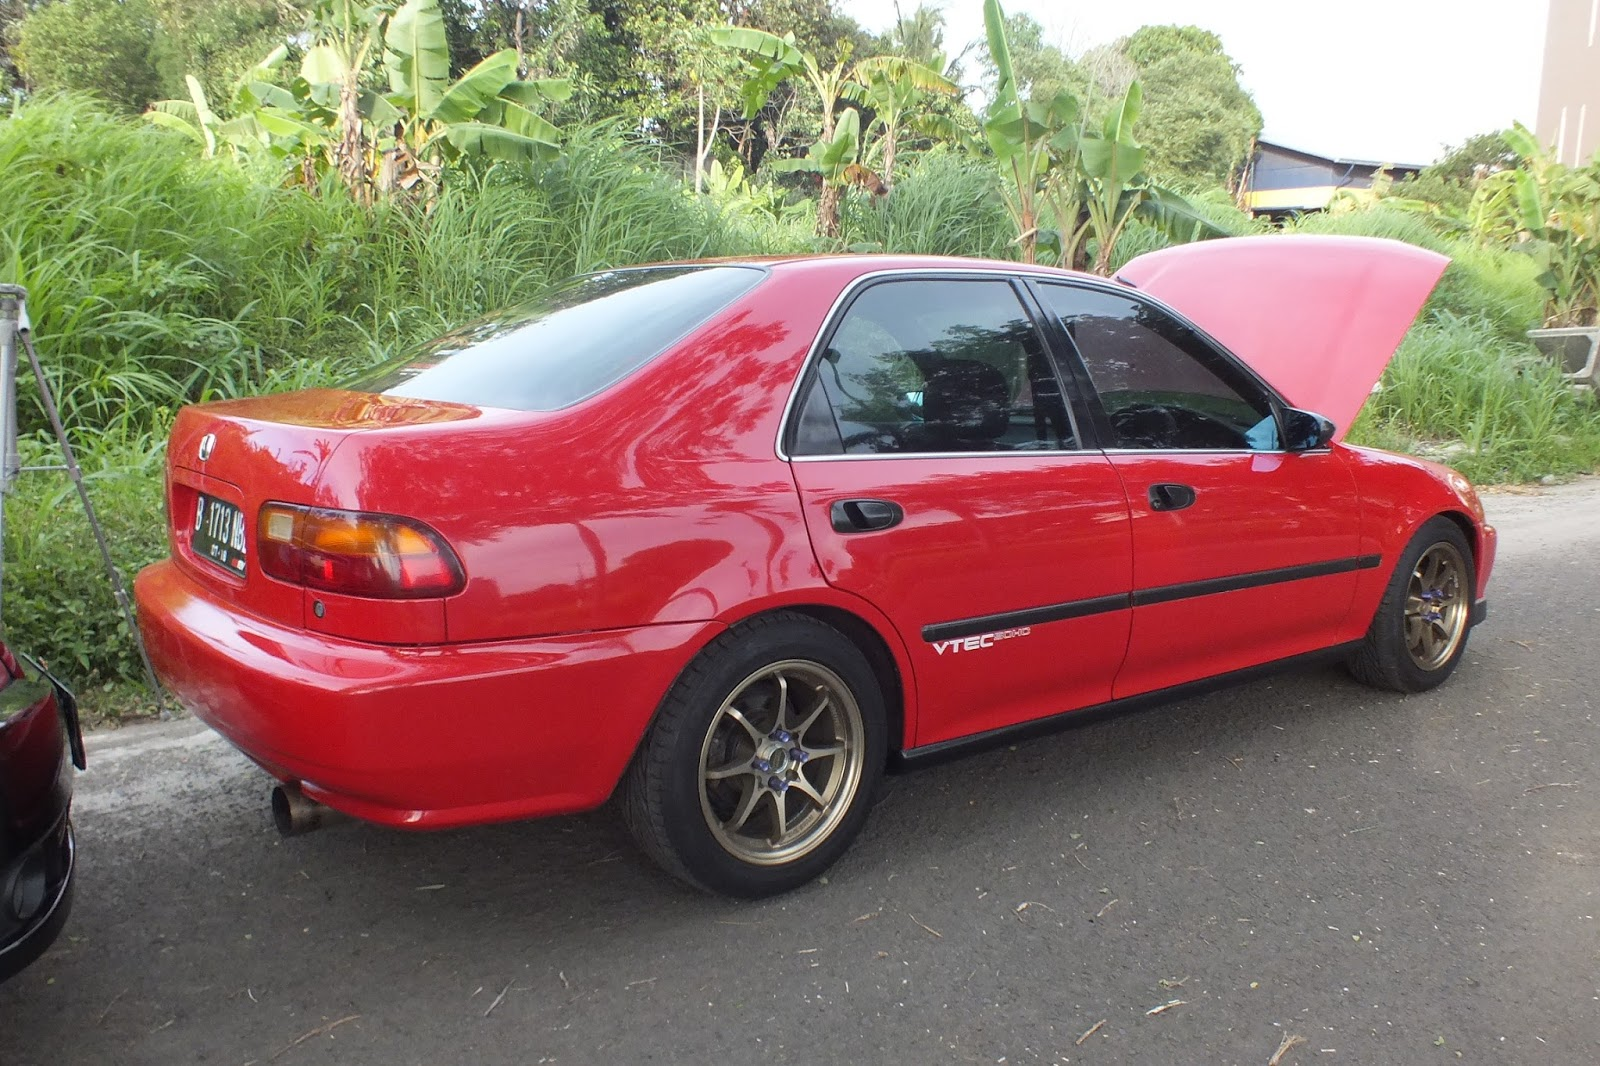 Capt Kunyitzse's blog: Modifikasi Honda Civic Genio Tahun 1994